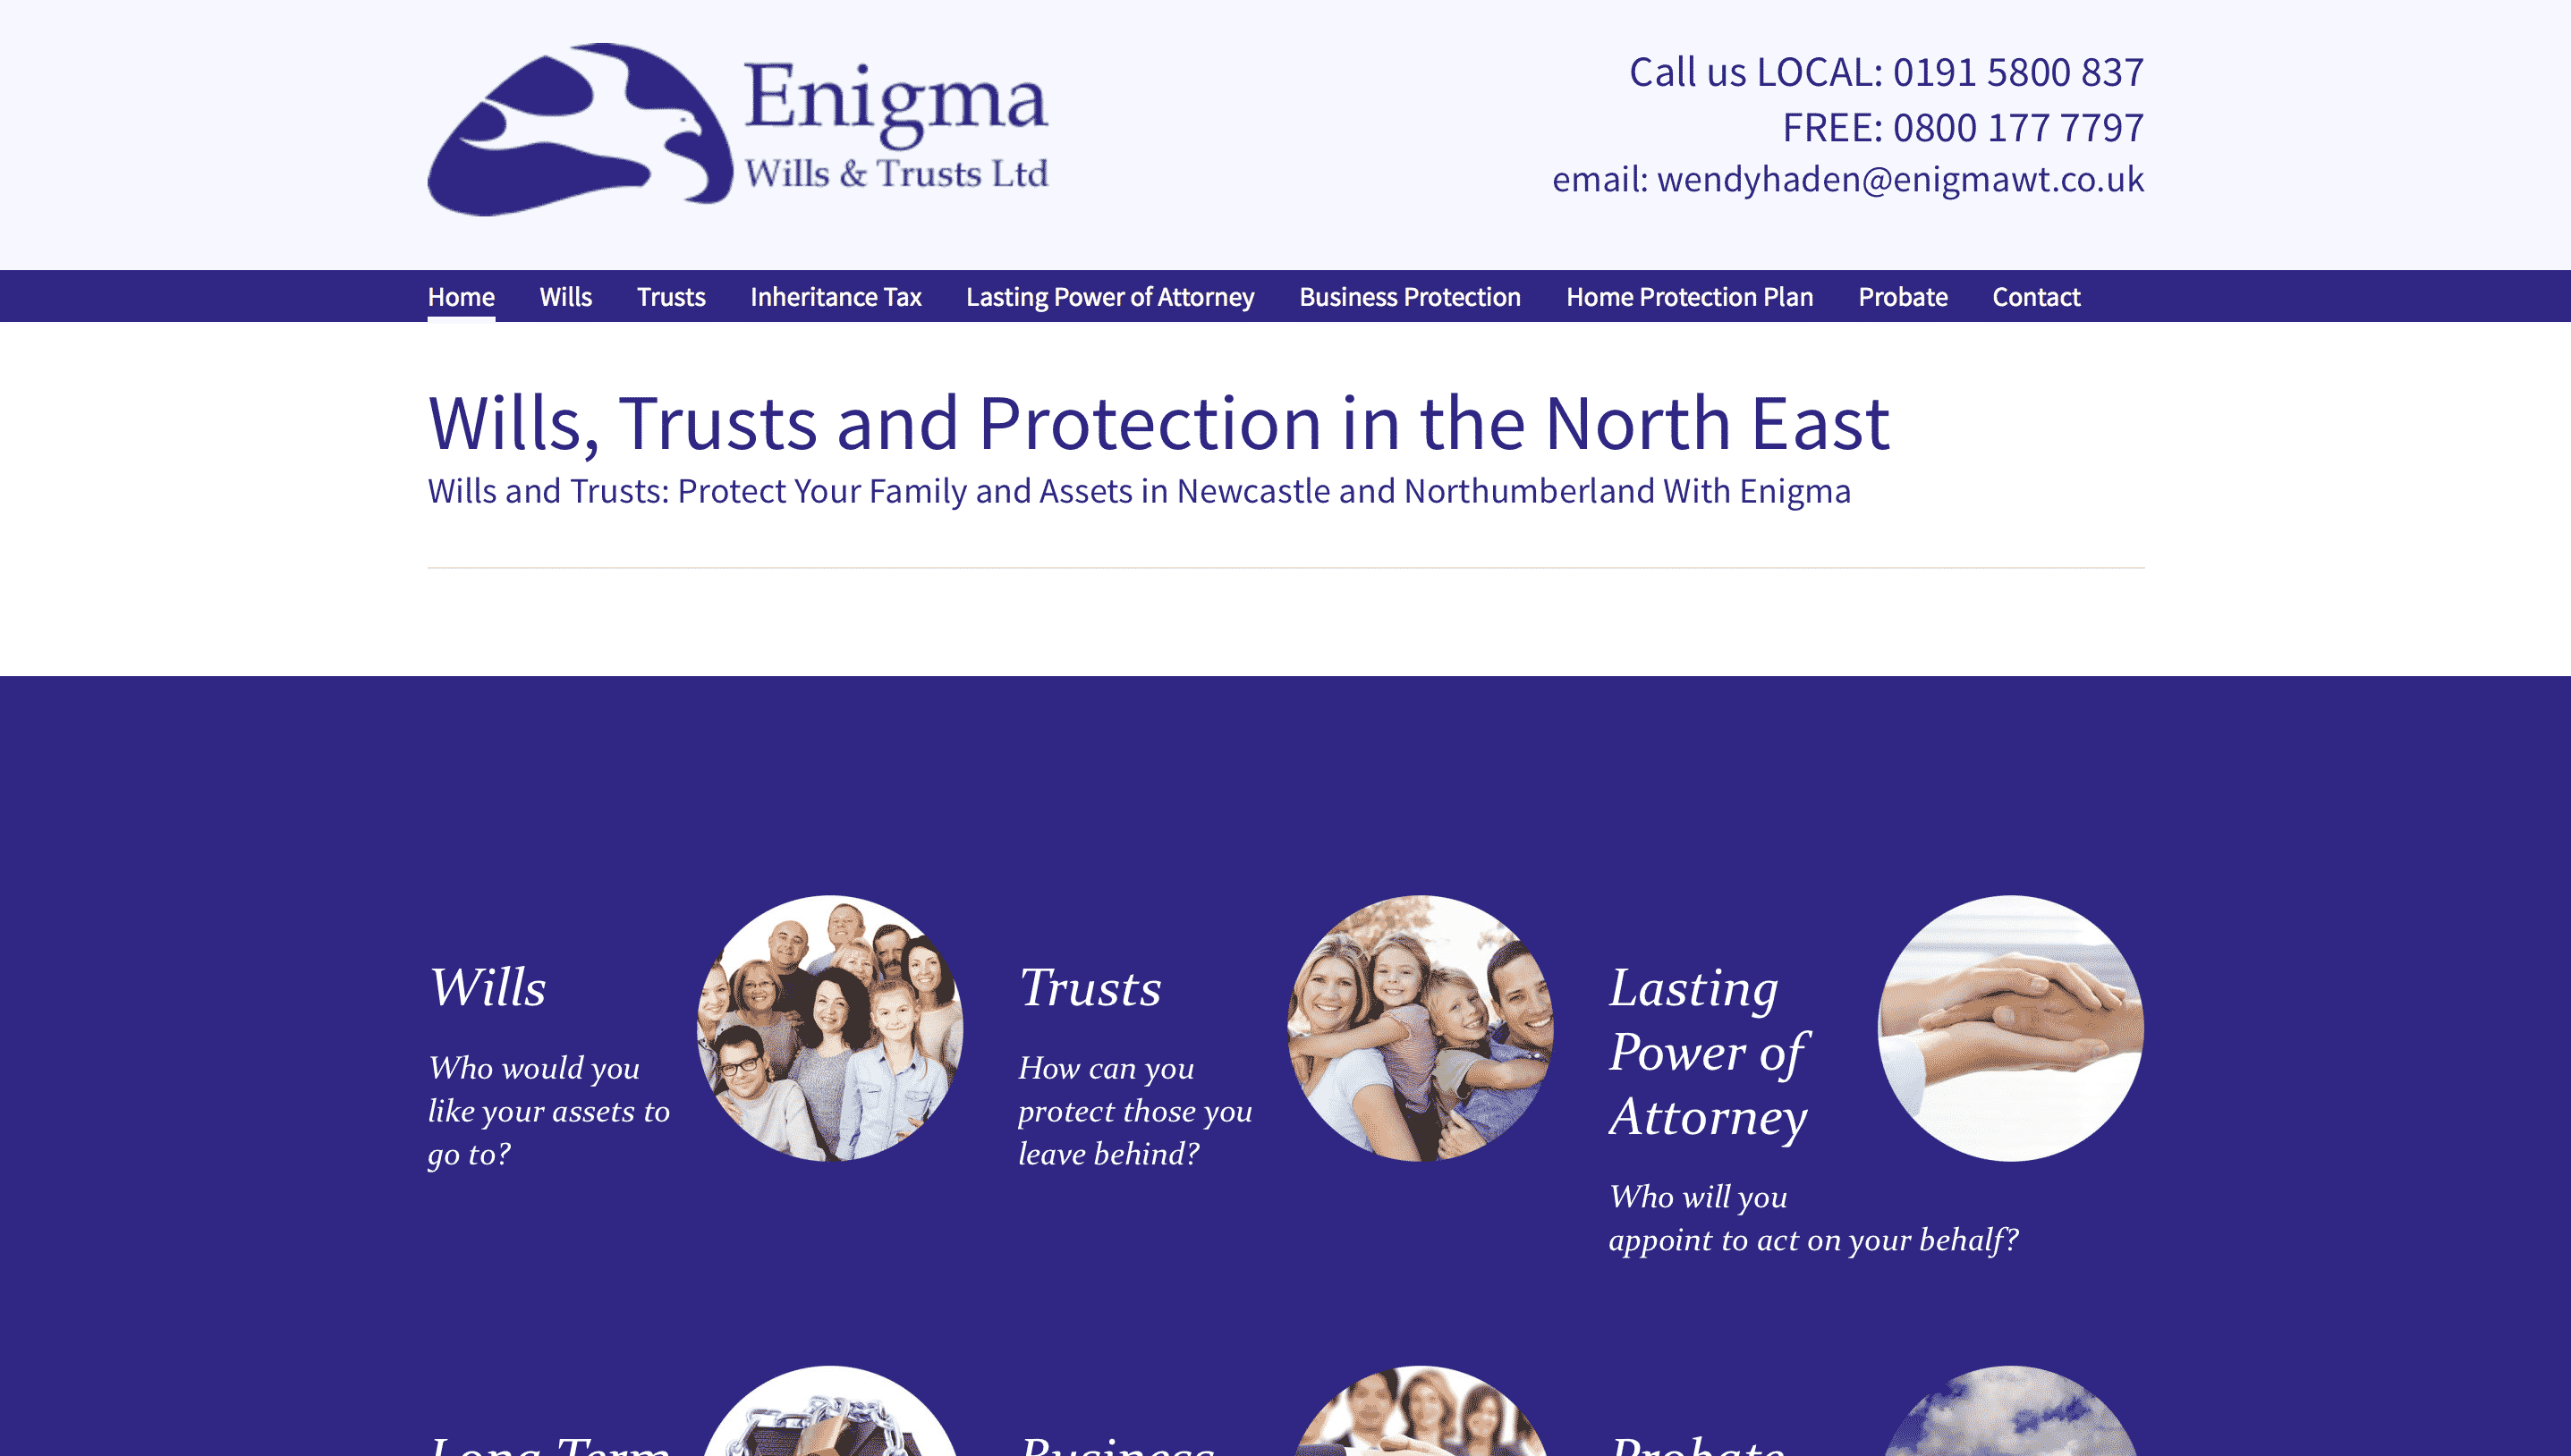 Enigma Wills and Trusts 1